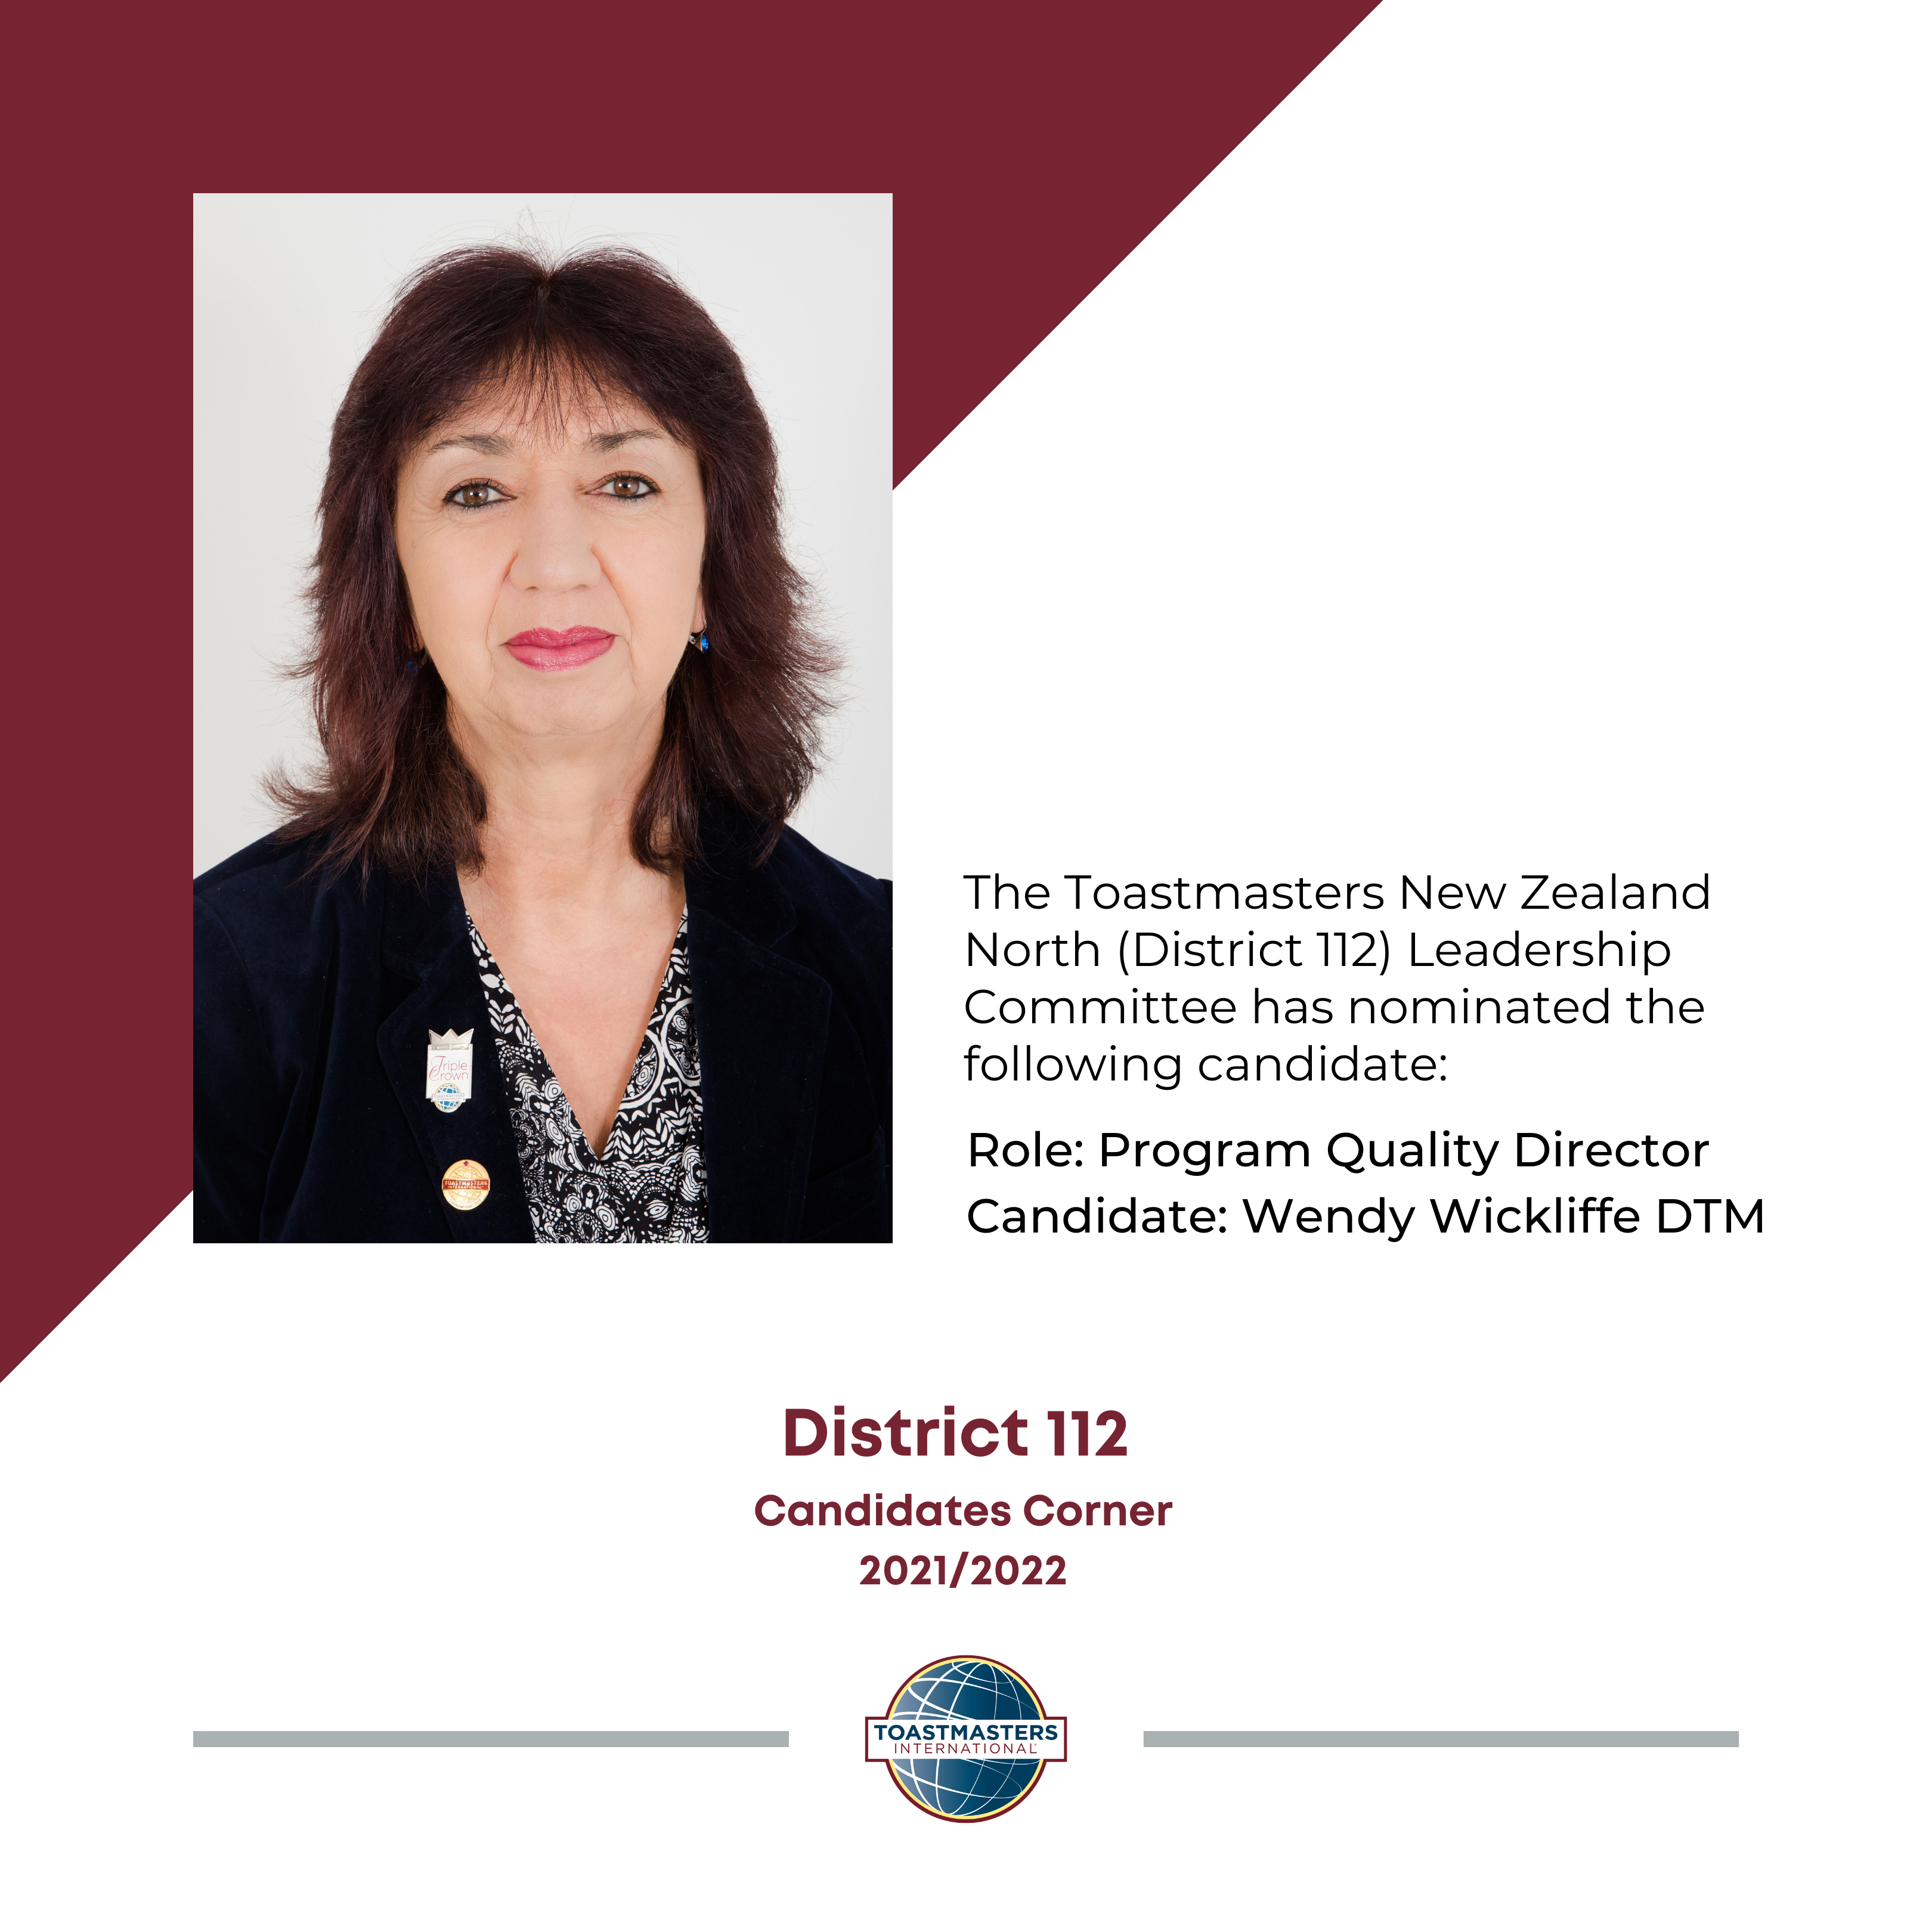 Role: Program Quality Director Candidate: Wendy Wickliffe DTM